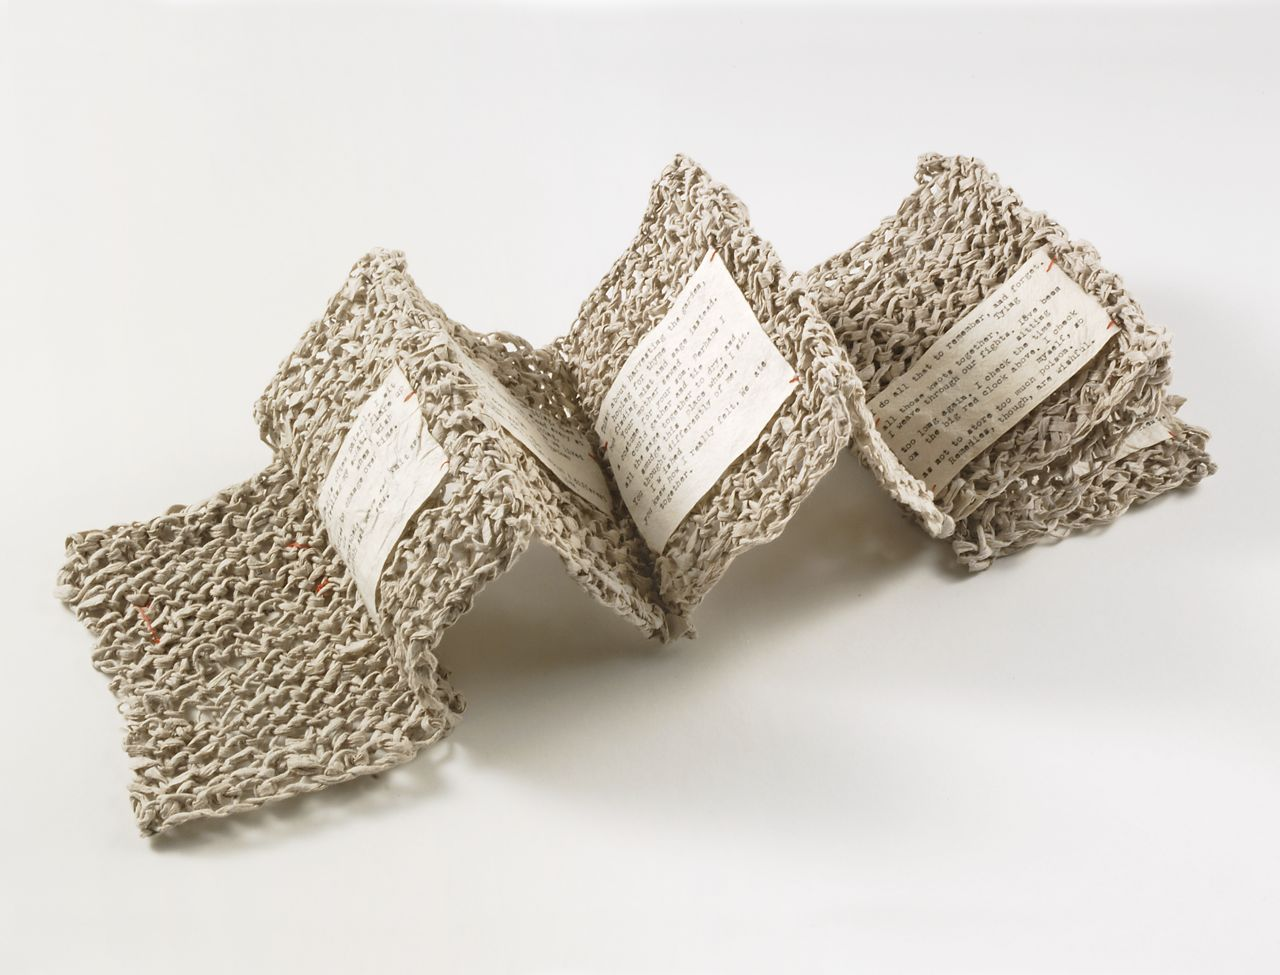 "Knit Sestina (2006). Handmade mulberry paper, typed poem, thread. 5.5 x 4.25 x 2"". Collection of Kohler Art Library, UW Madison."